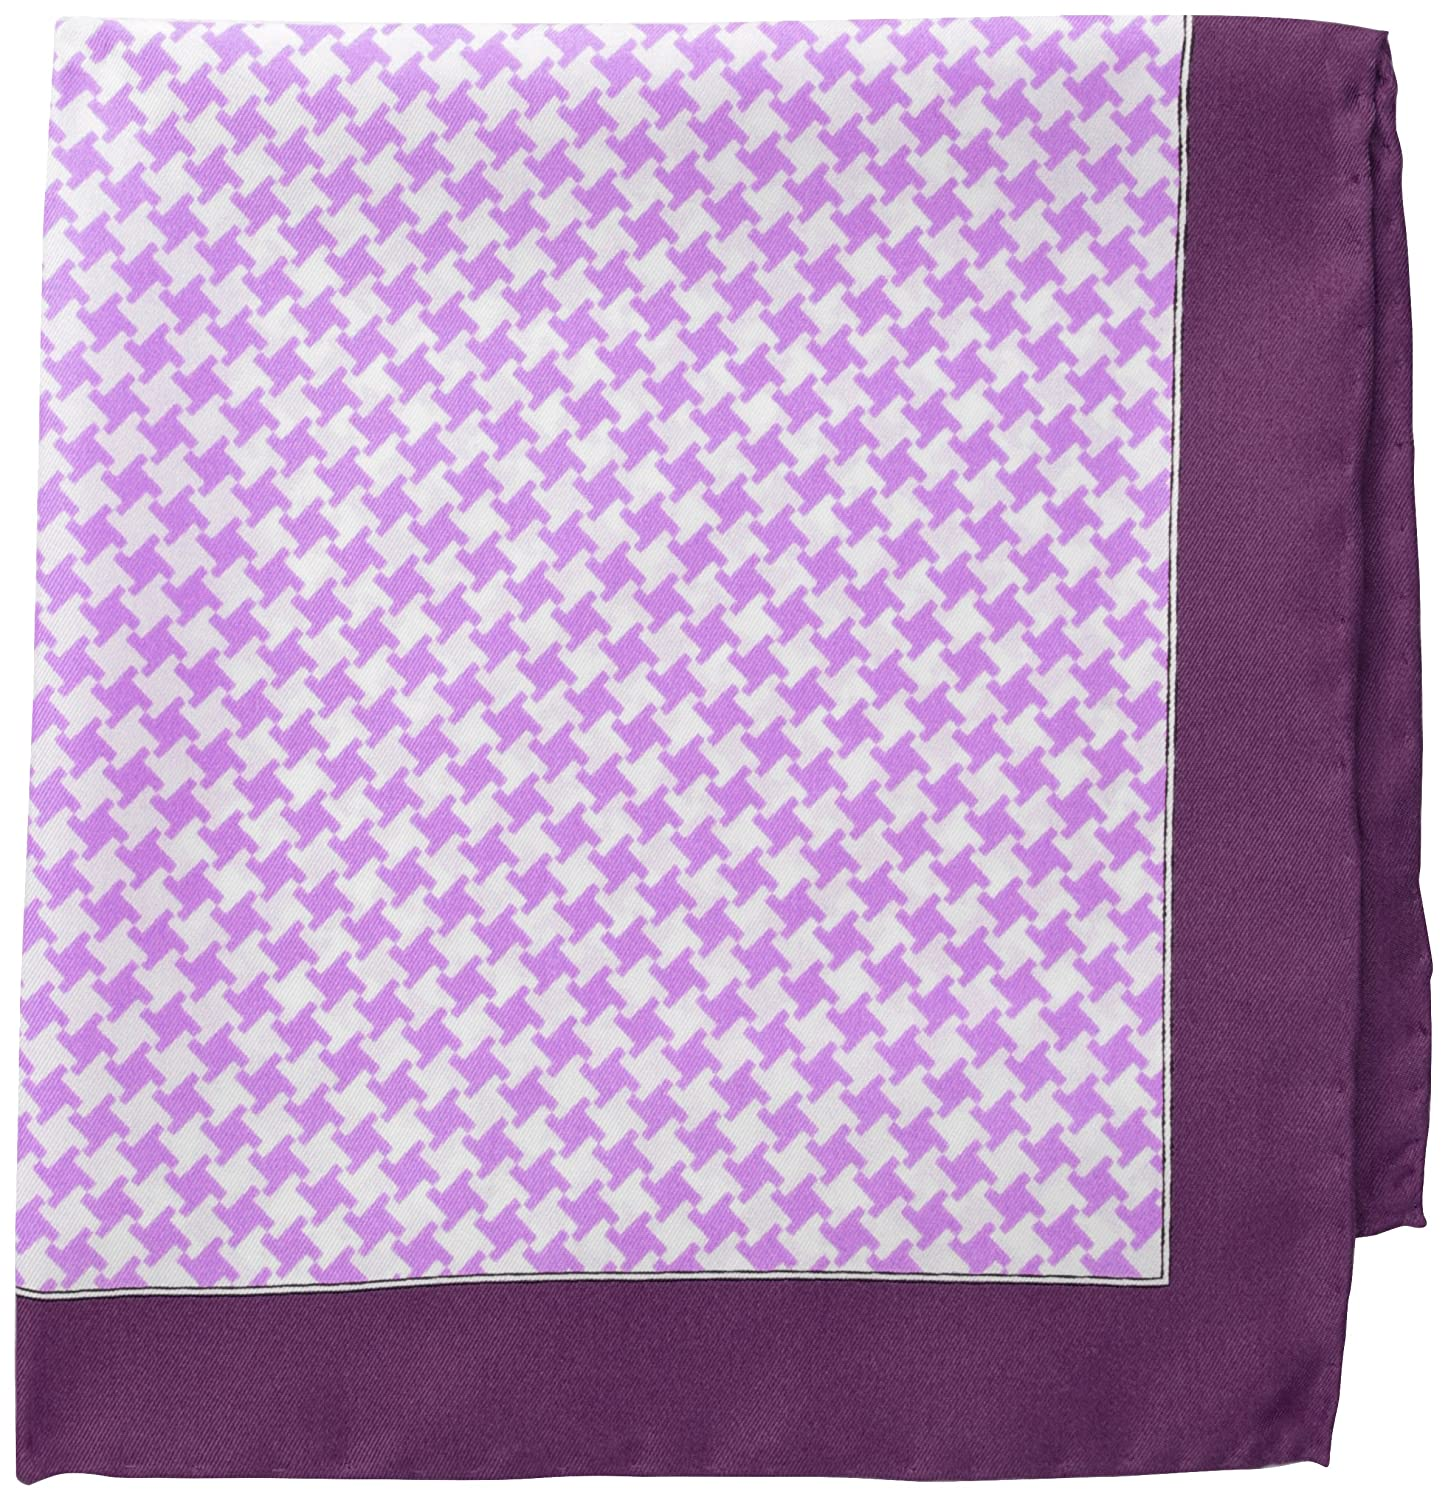 Countess Mara Mens Washington Houndstooth Pocket Square Purple One Size Randa Neckwear CM20300004